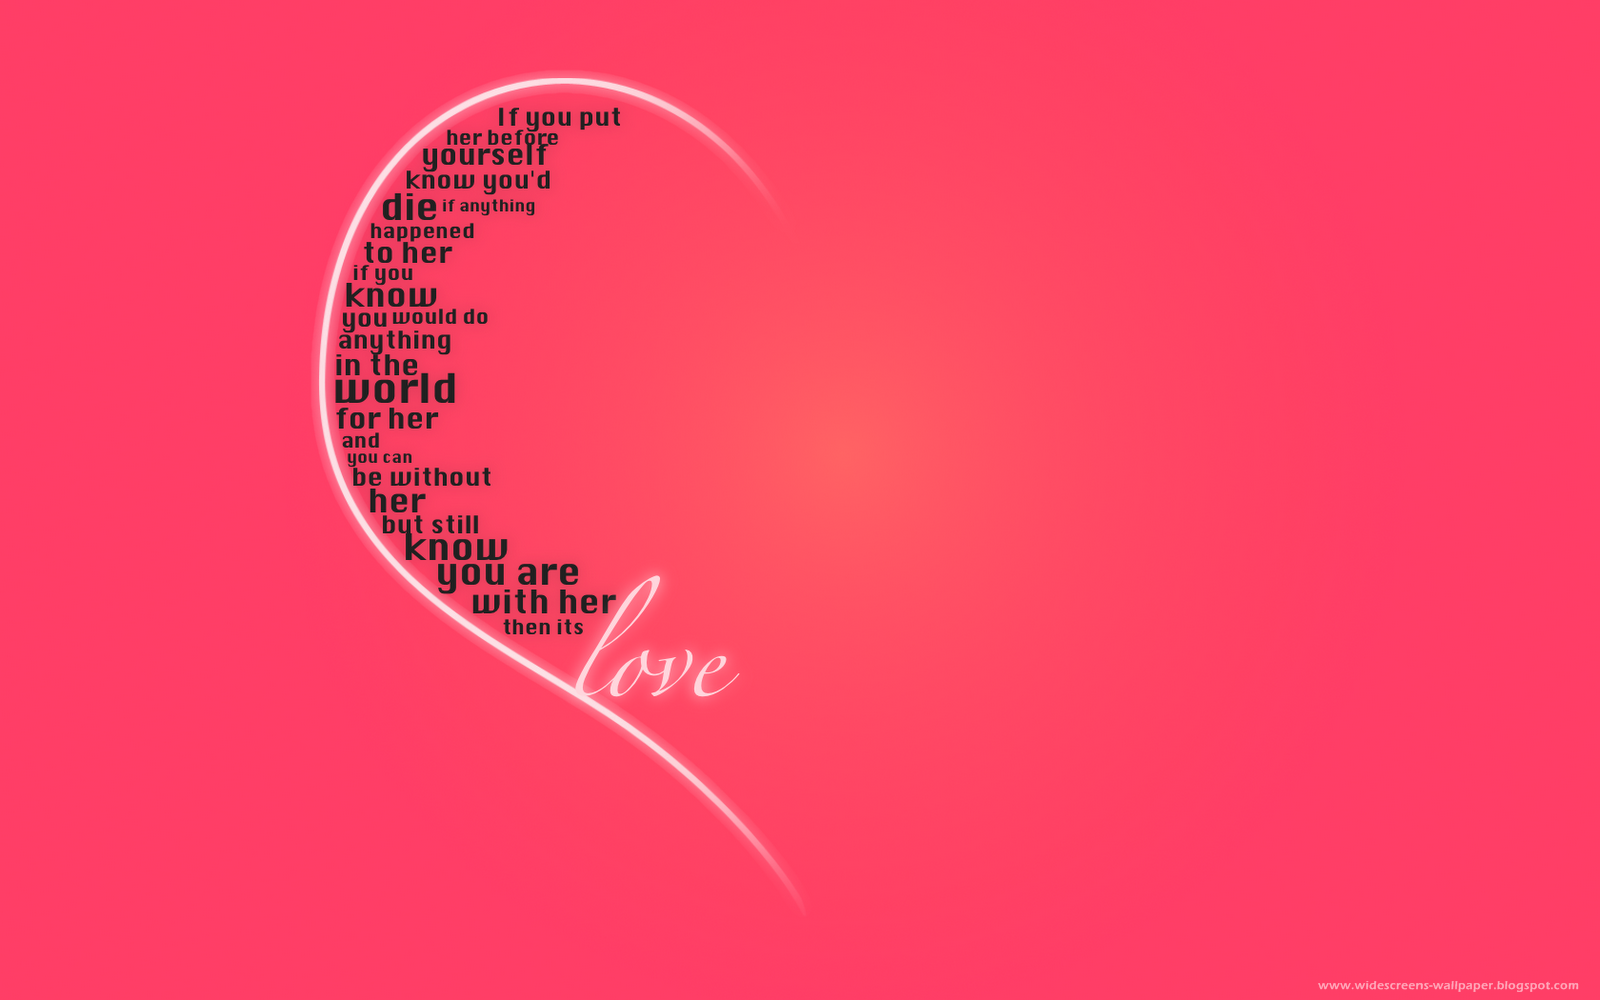 Quotes And Sayings: Love Quotes Wallpapers Ever